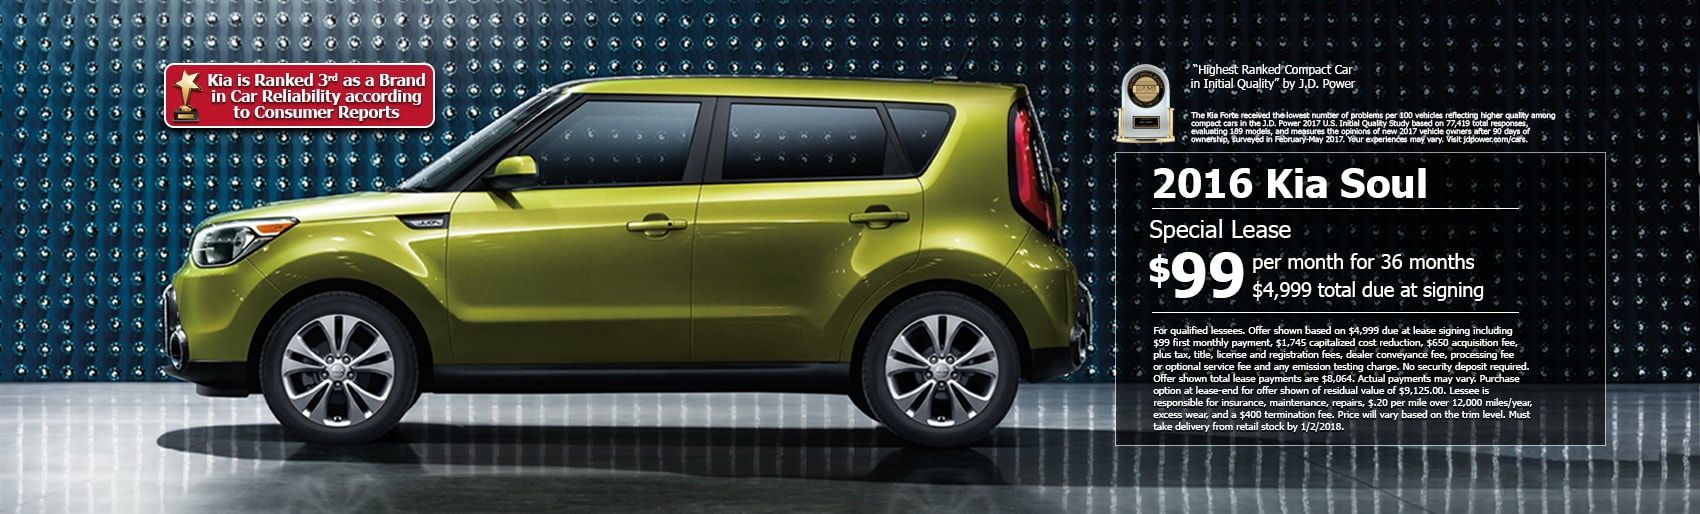 2016 Kia Soul Reviews Consumer Reports All About